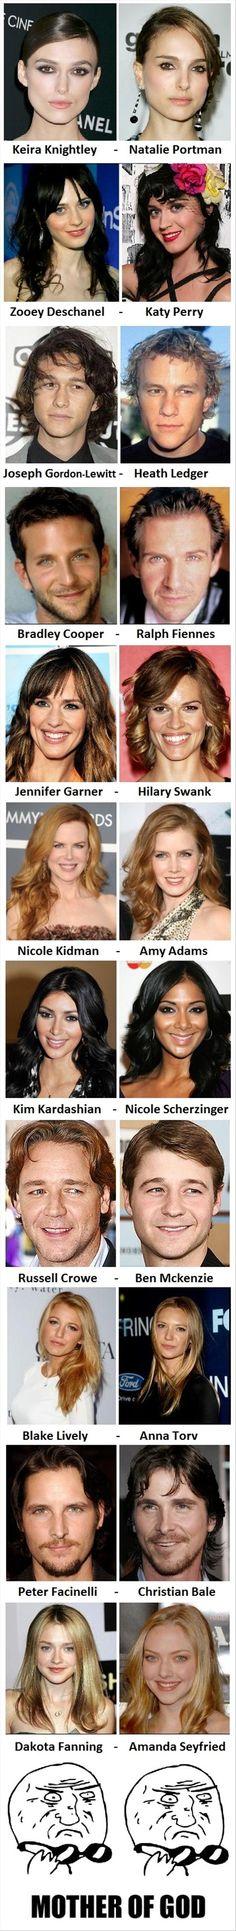 Celebrity Look-A-Likes – 12 Pics